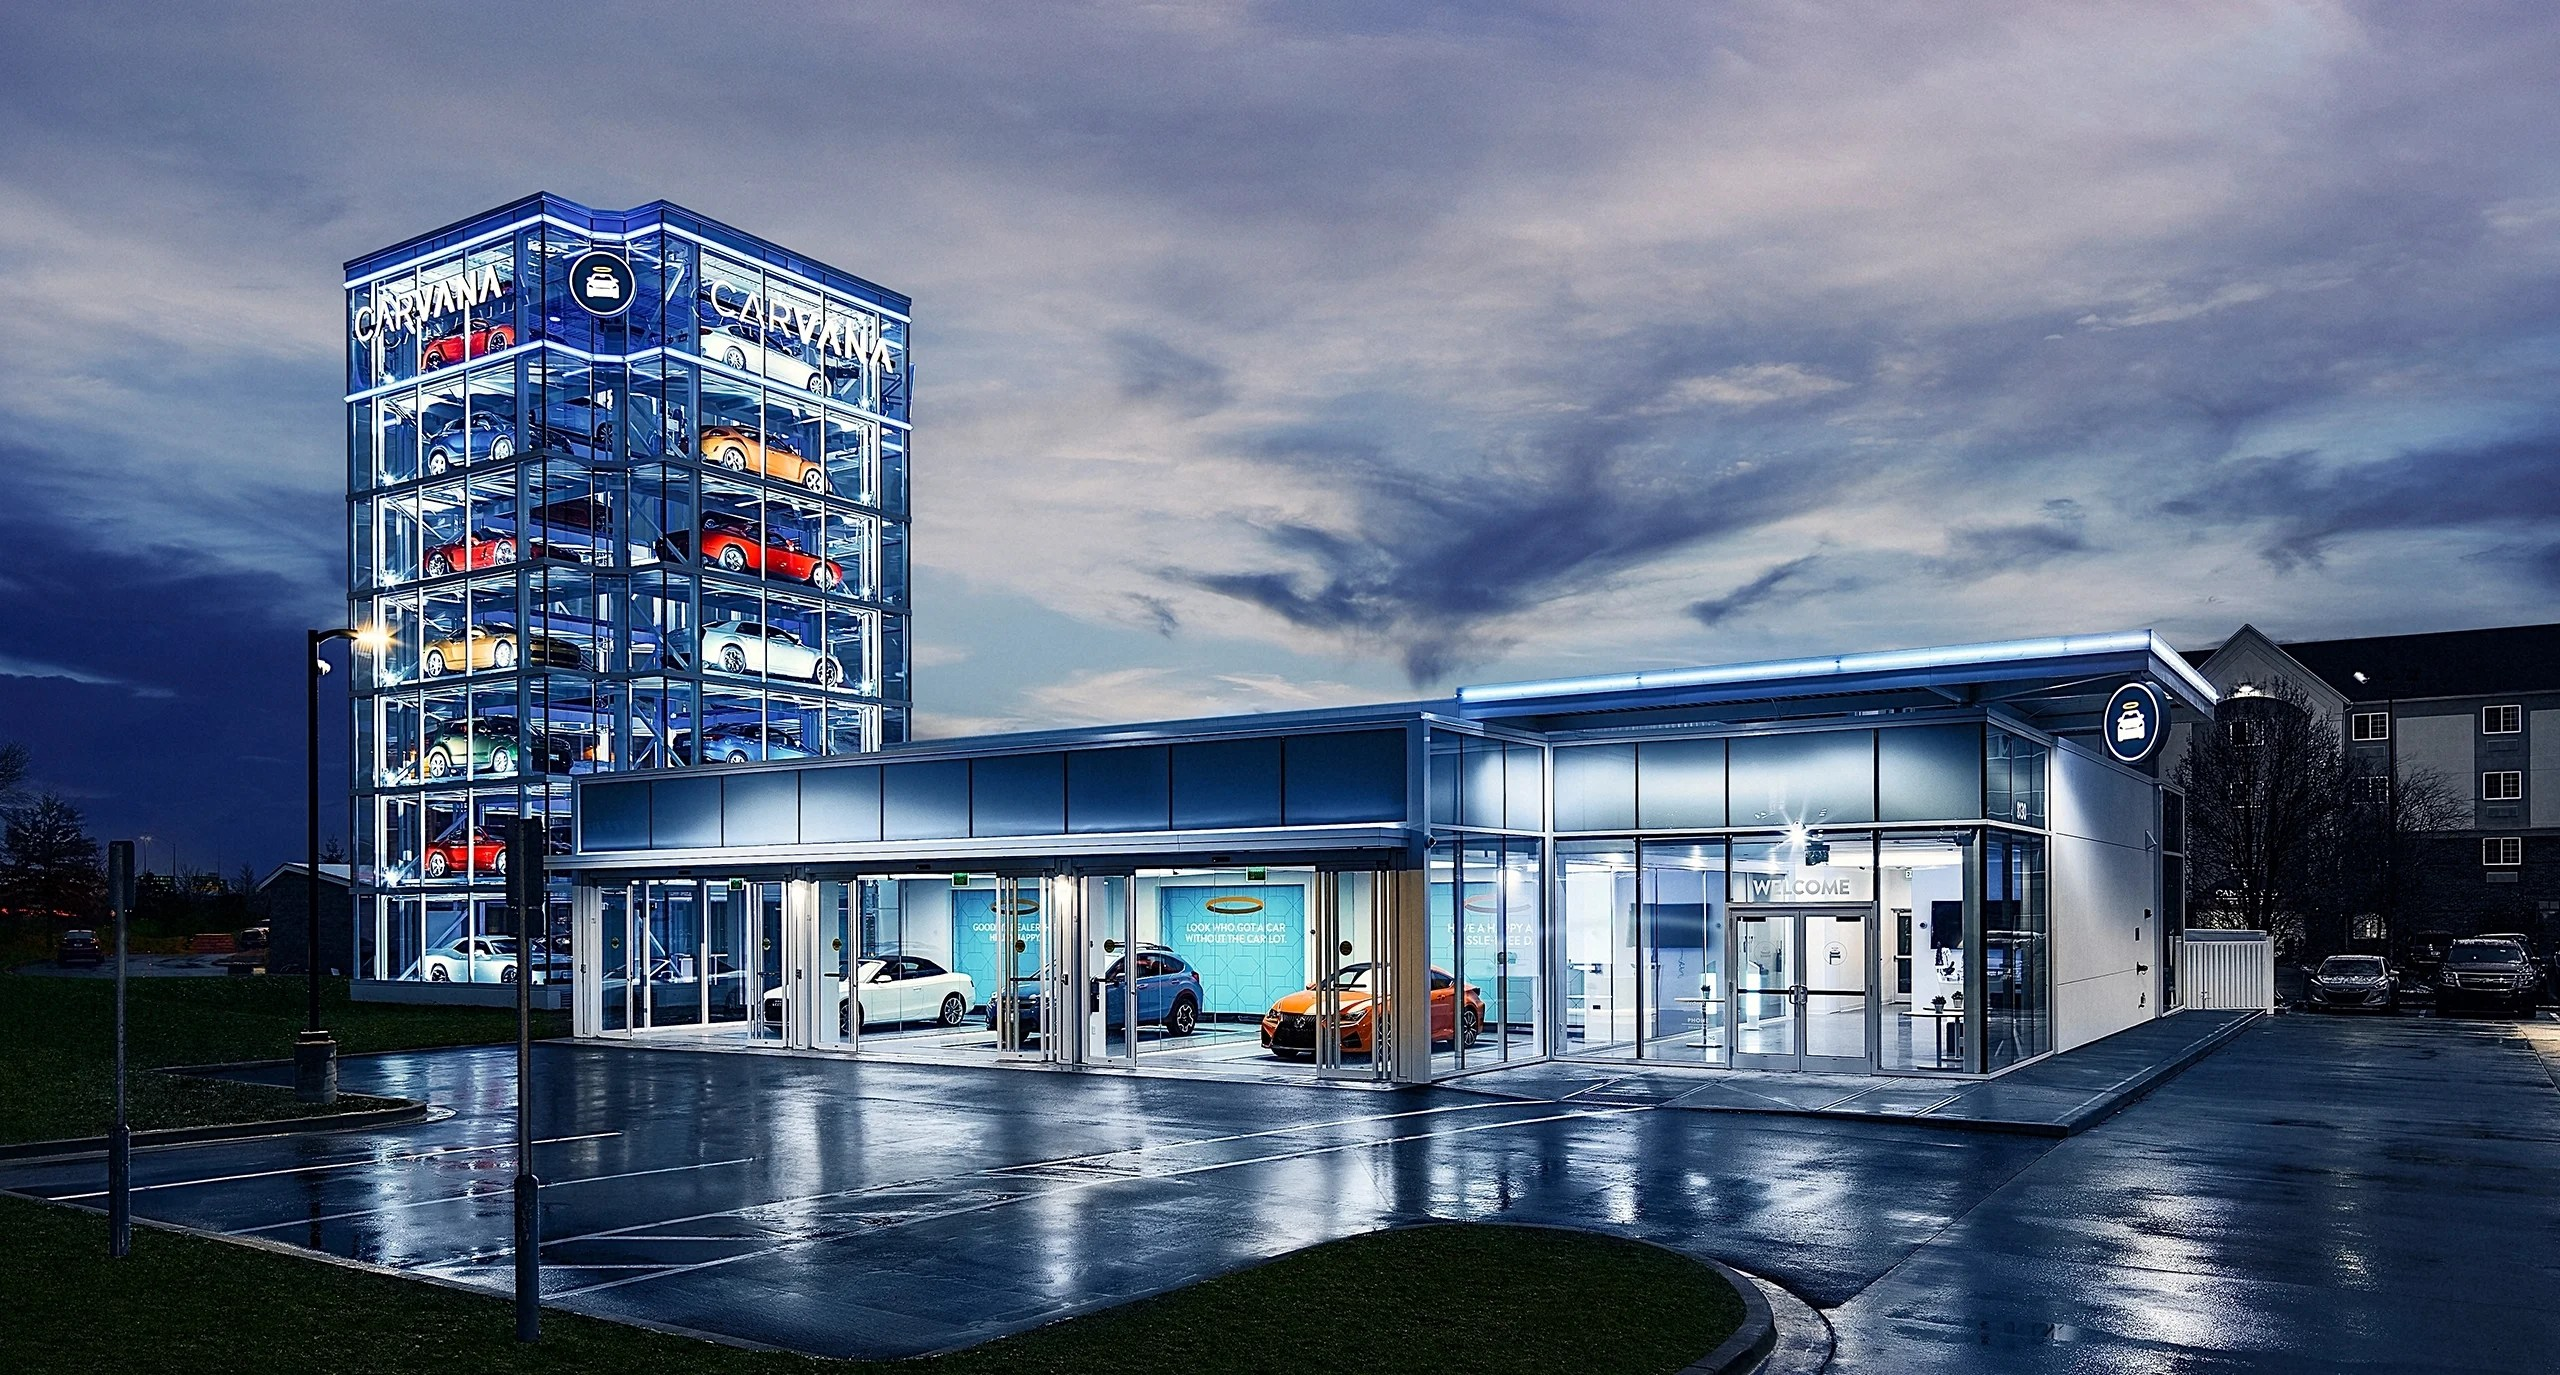 Why Carvana S Car Vending Machine Is More Than Just A